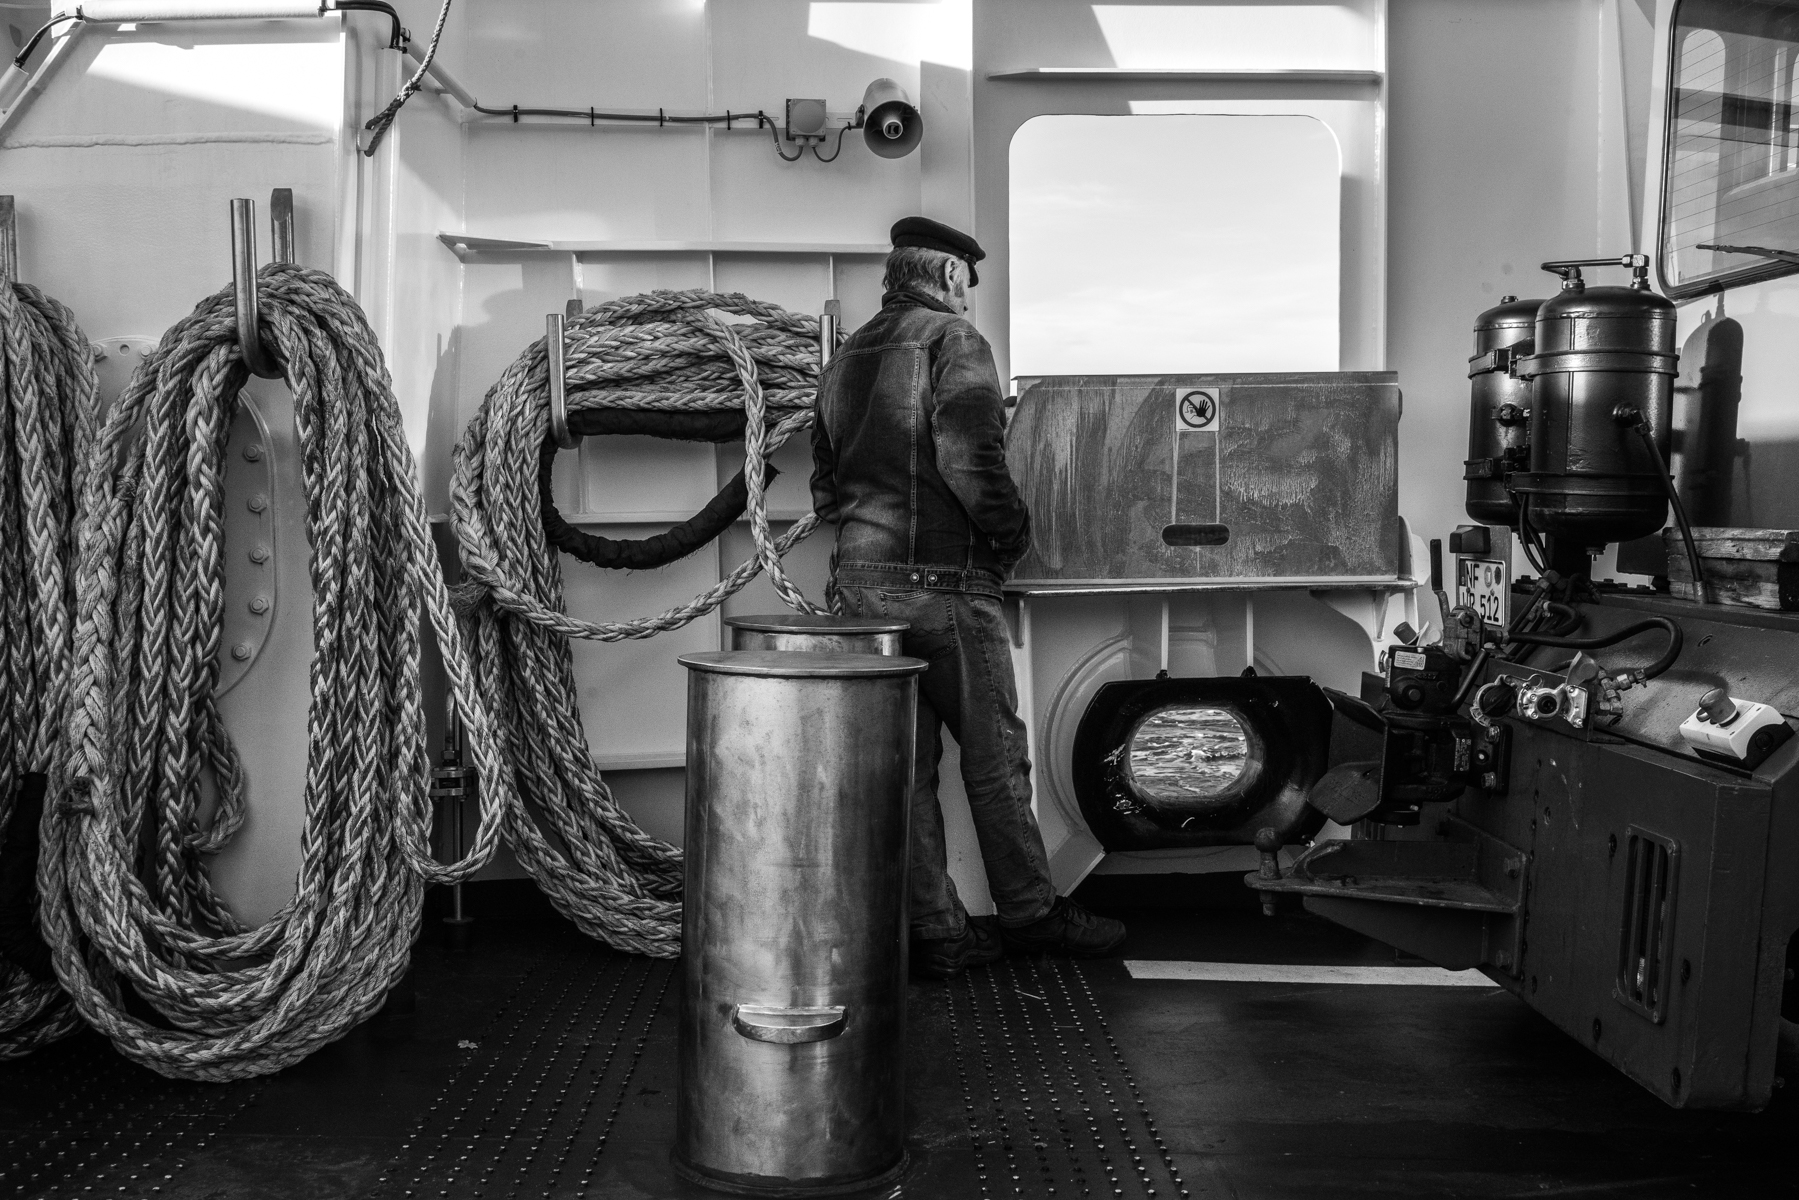 November 2019: A man on a ferry between the German city of Dagebüll and the island of Föhr in the Northern Sea